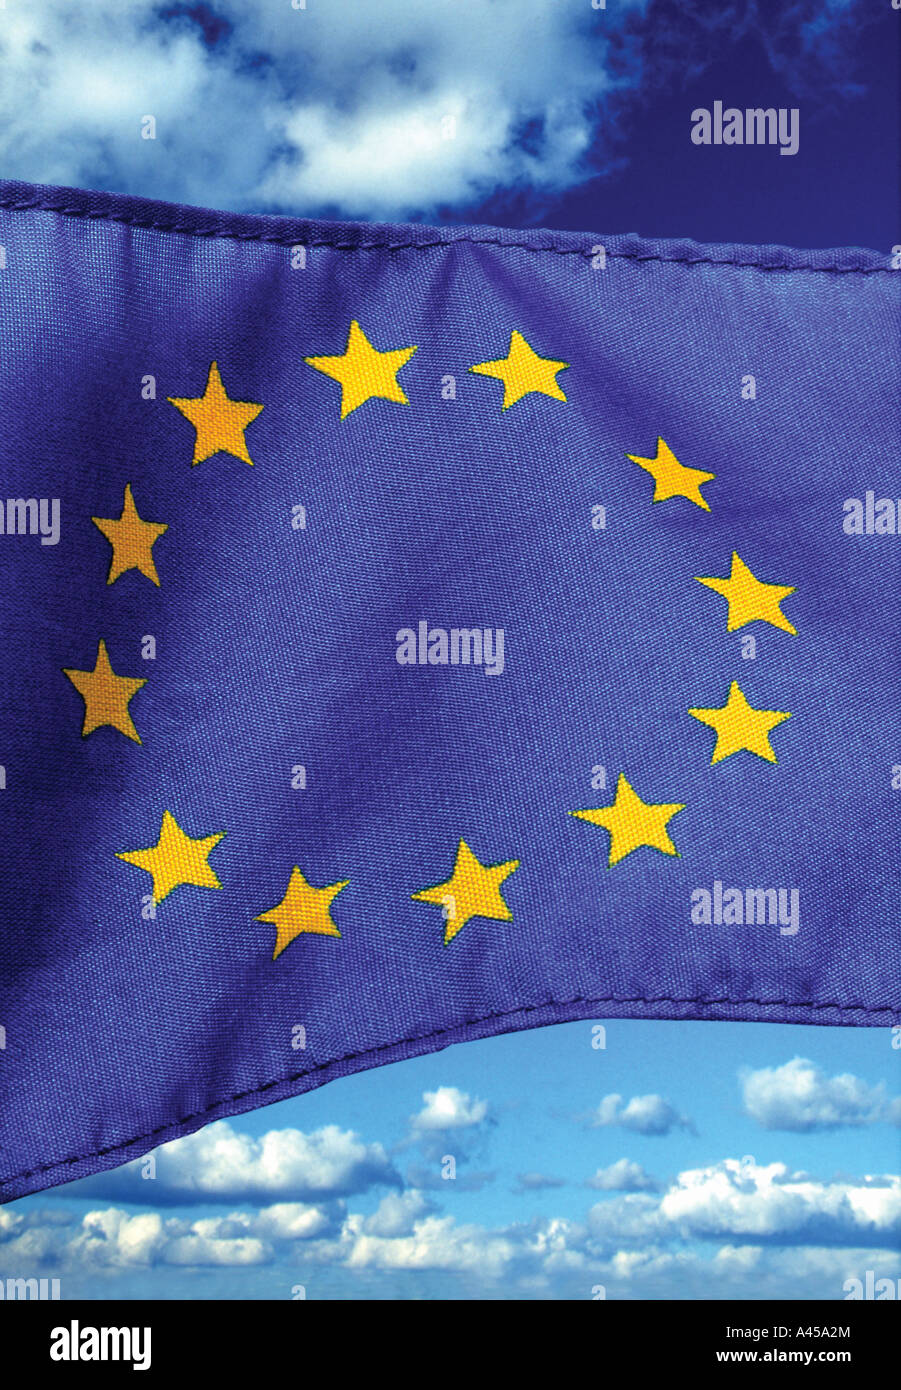 European EU flag - Stock Image